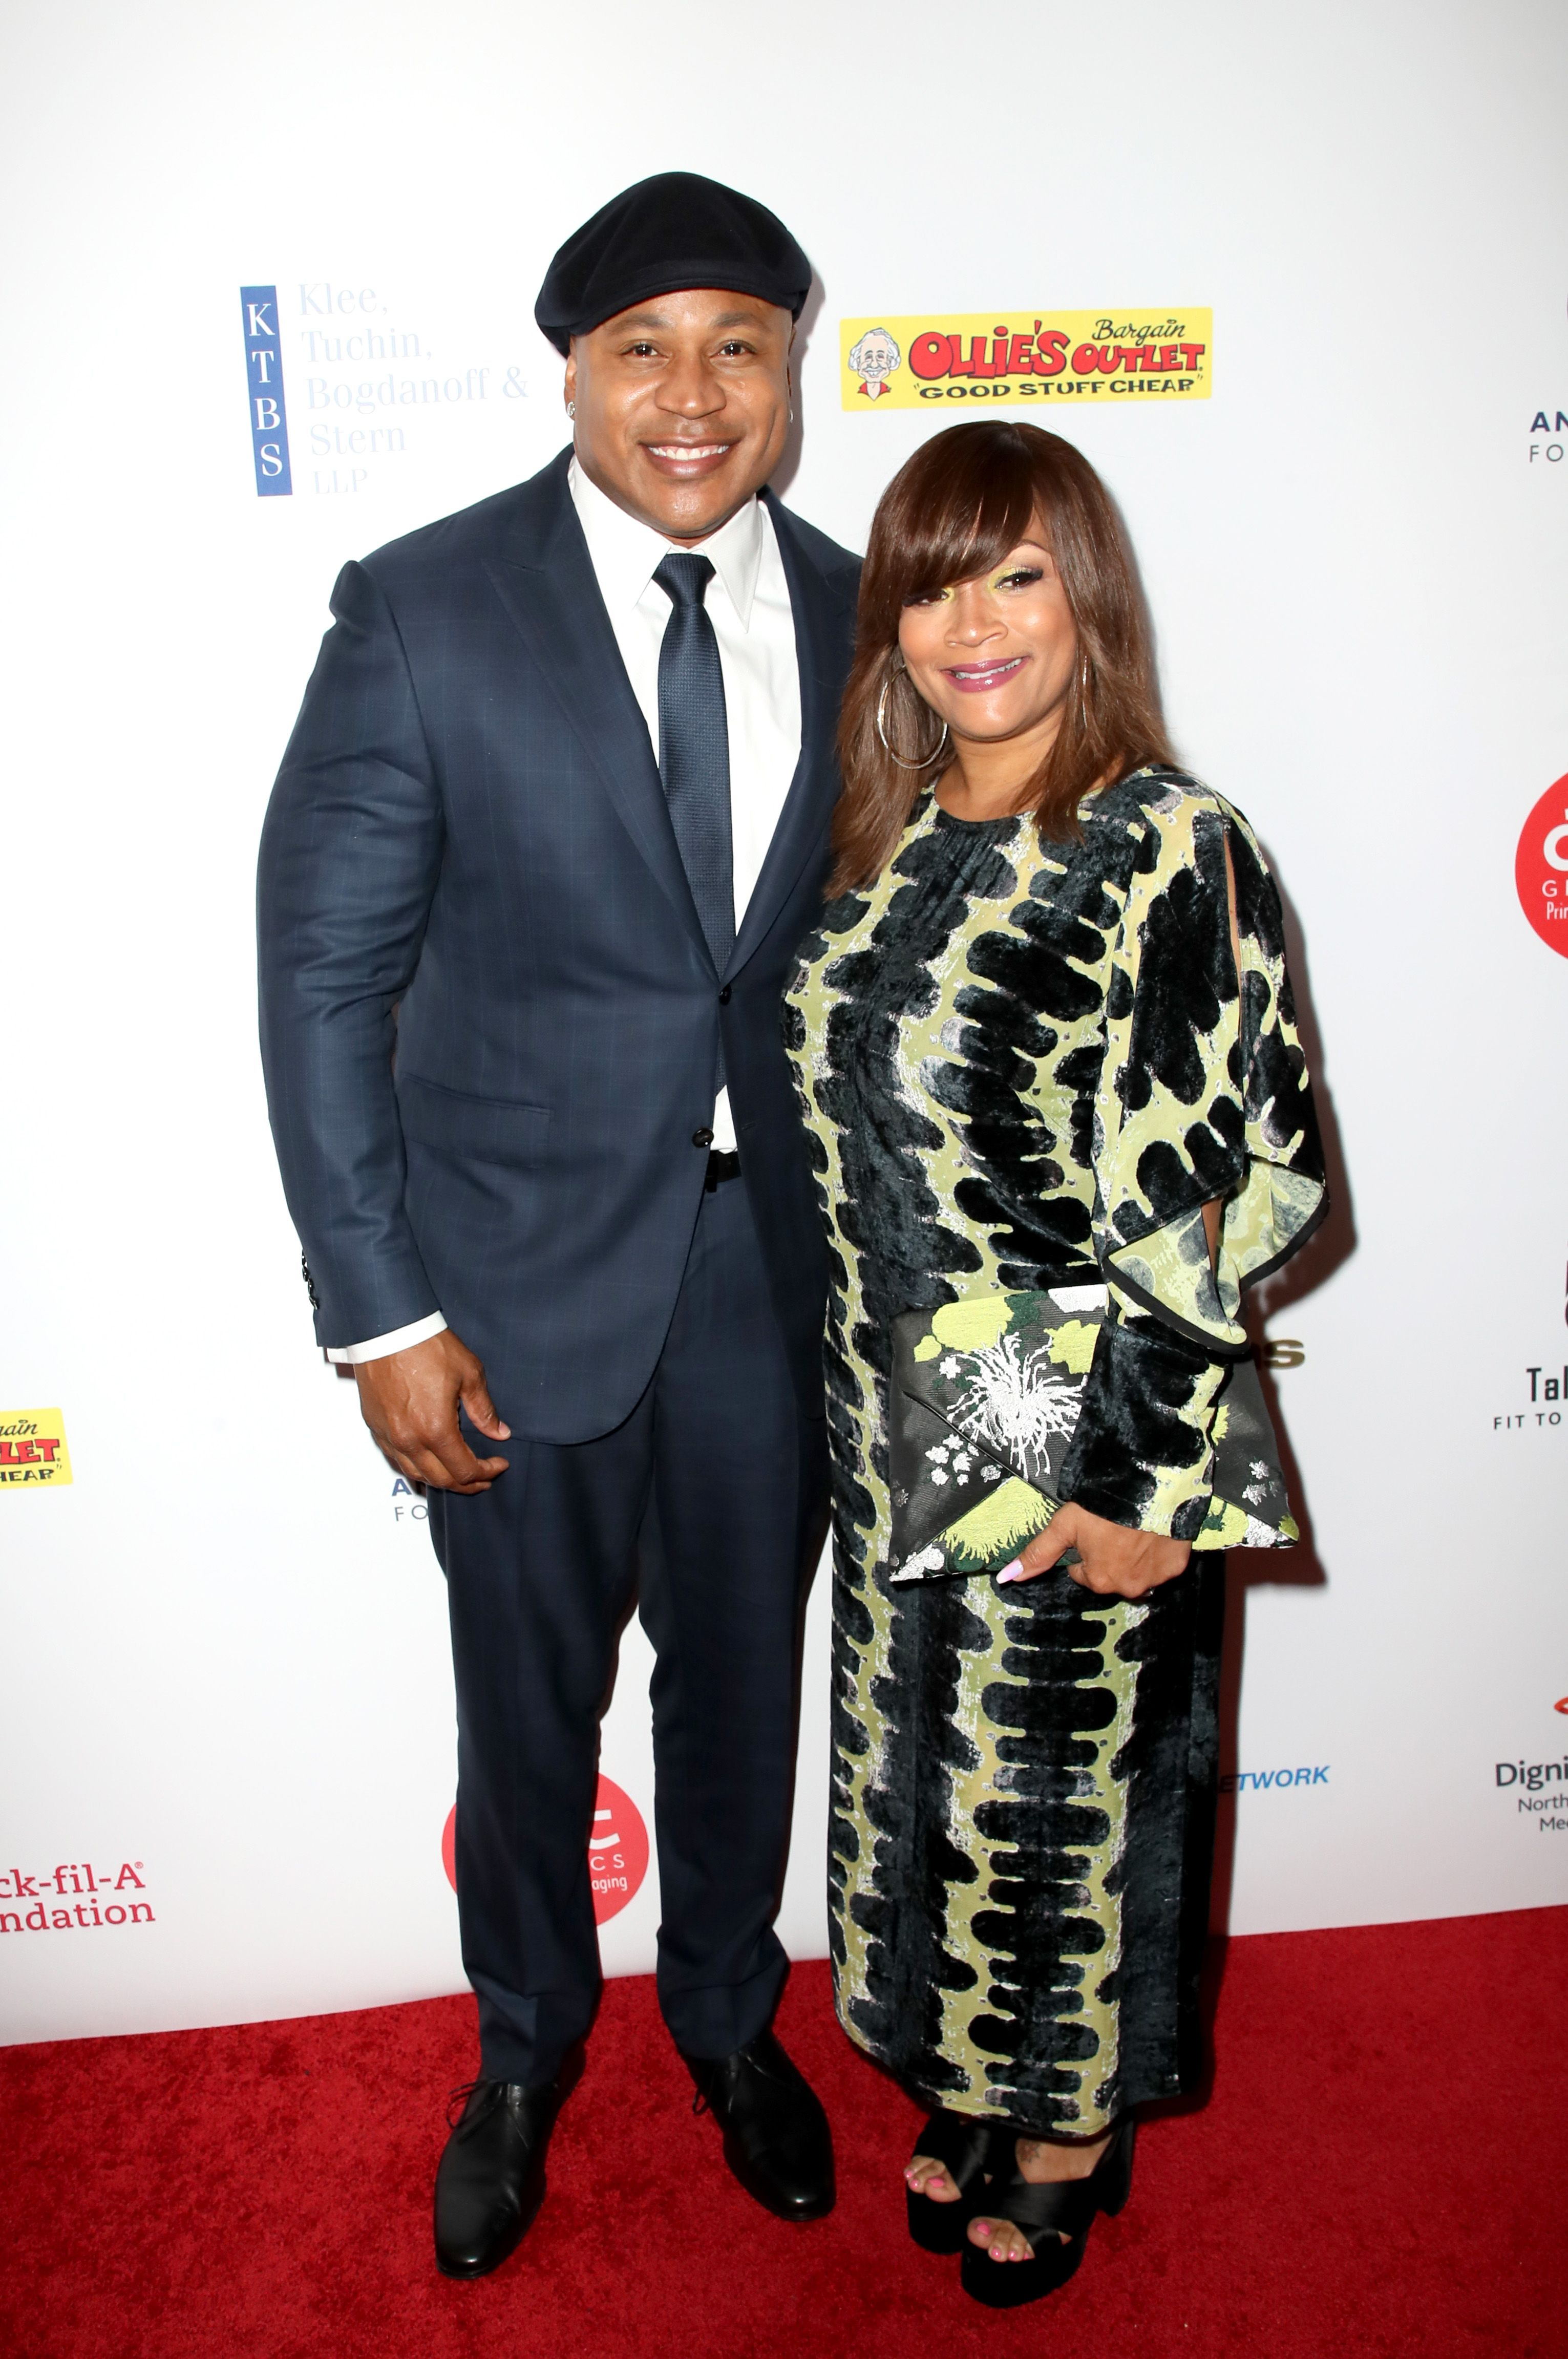 LL Cool J and Simone Smith at the 17th Annual Harold & Carole Pump Foundation Gala at The Beverly Hilton Hotel on August 11, 2017 in Beverly Hills, California | Photo: Getty Images